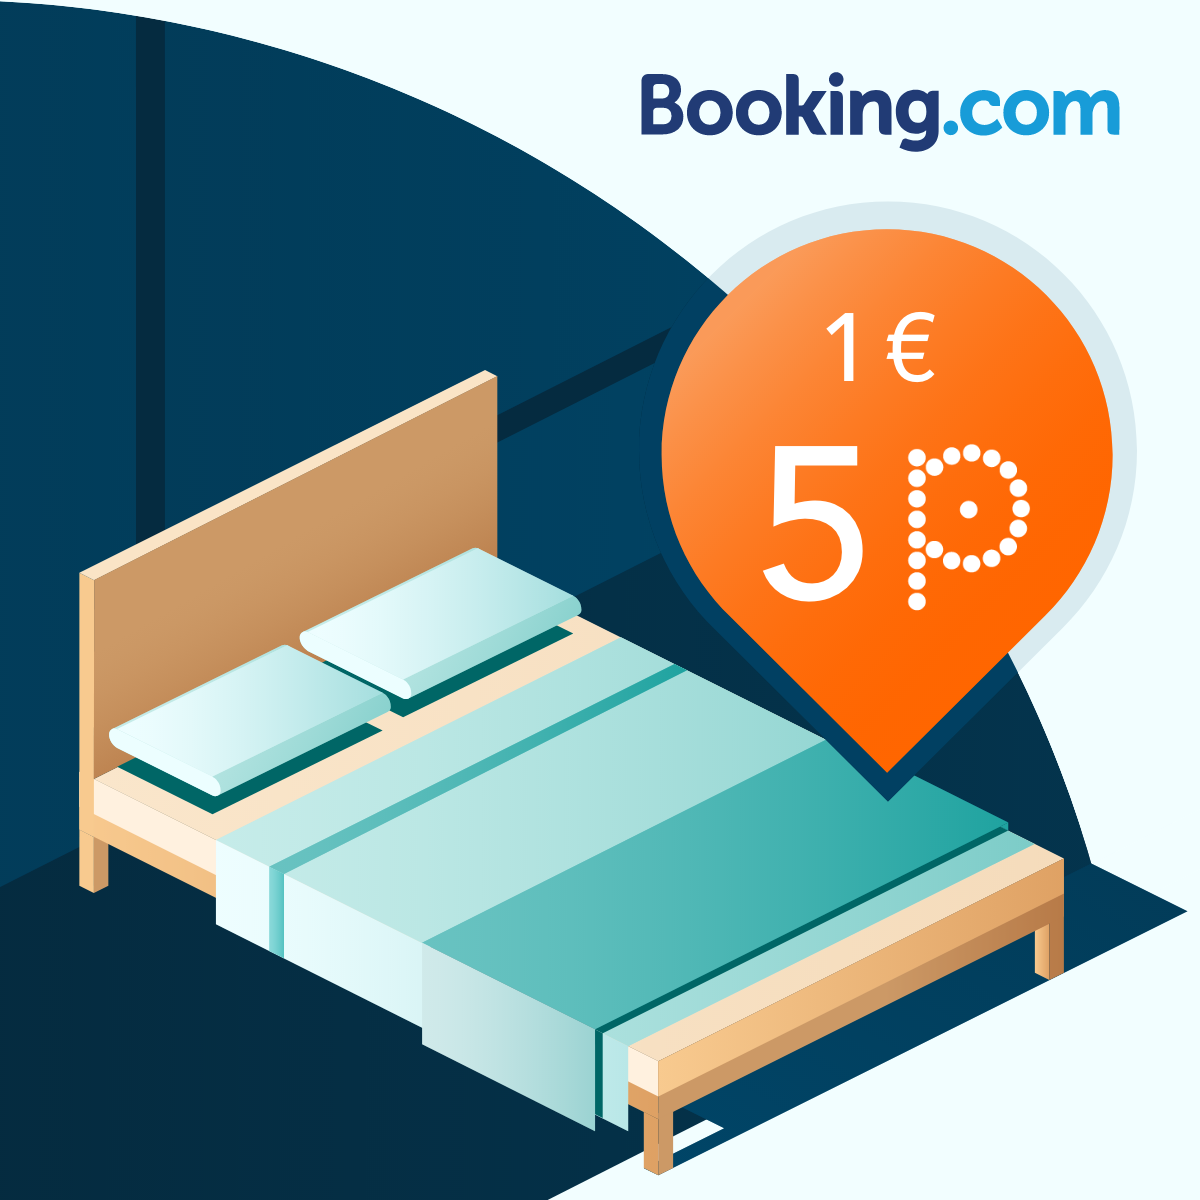 Book hoteks on Booking.com/pins and earn 5P/EUR! image